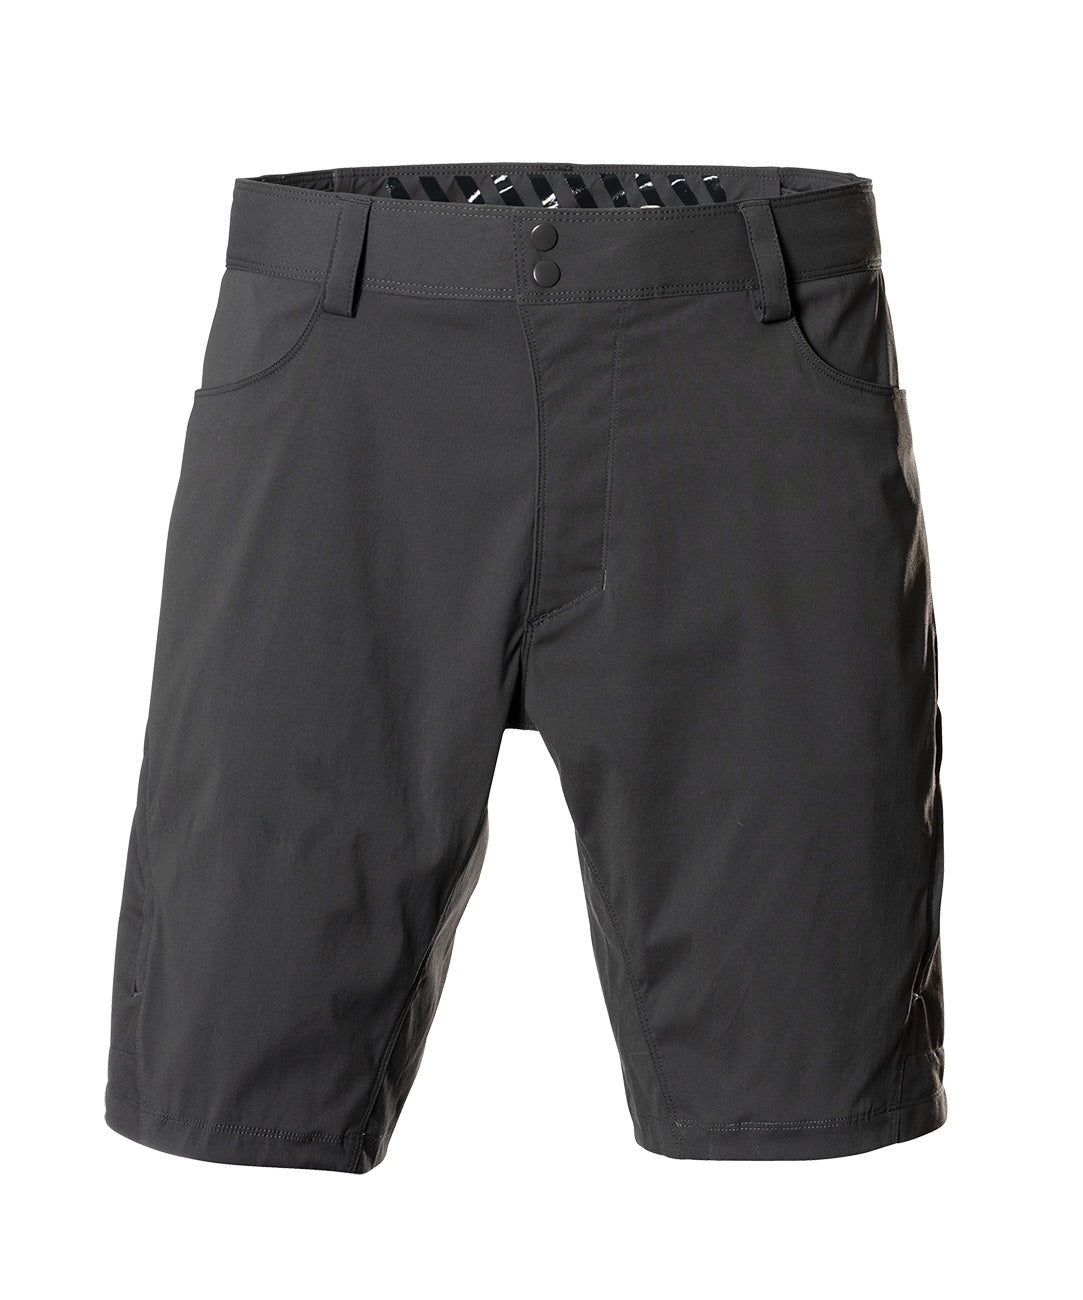 "Men's Gravel 10"" Shorts"